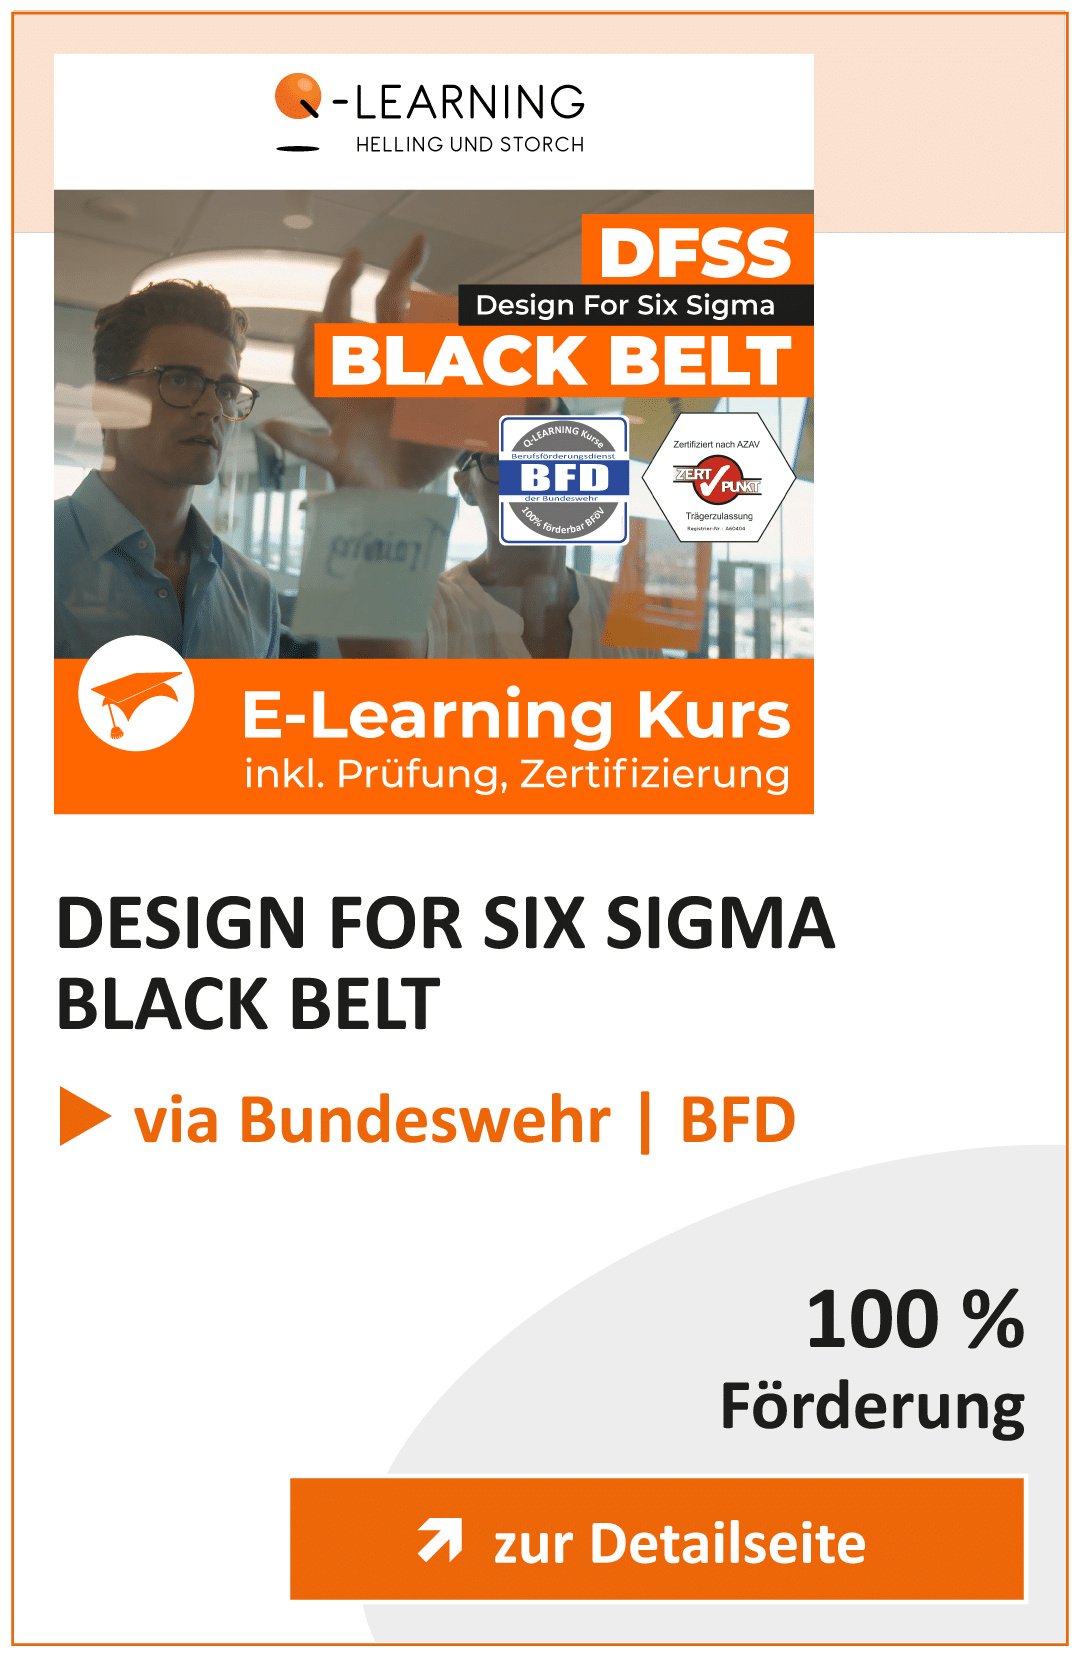 Produktbox DFSS DESIGN FOR SIX SIGMA Black Belt BFD Info